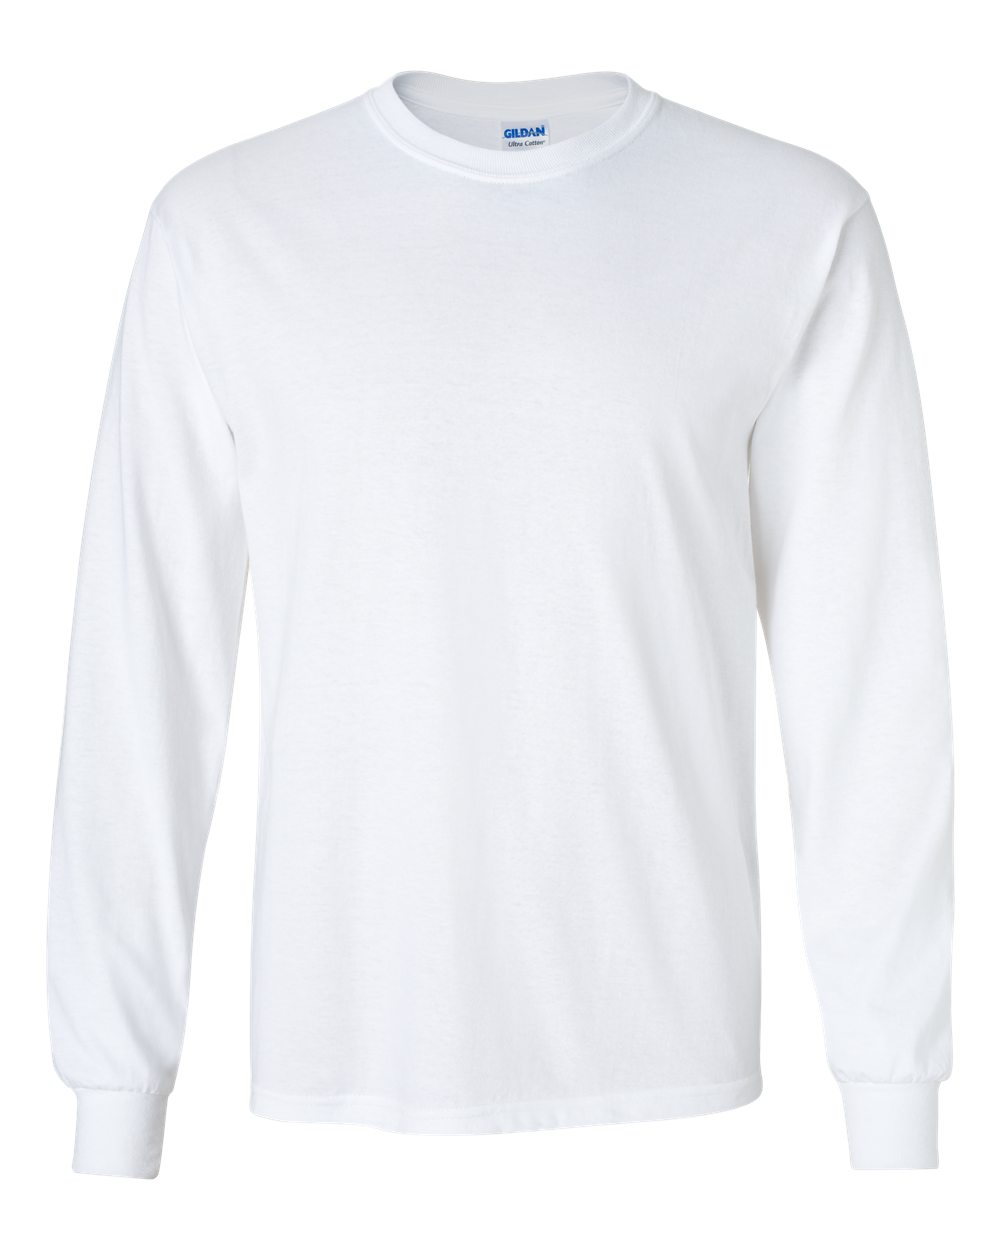 Gildan Ultra Cotton Long Sleeve T-Shirt - S-XL on Storenvy 5bbbe23d814